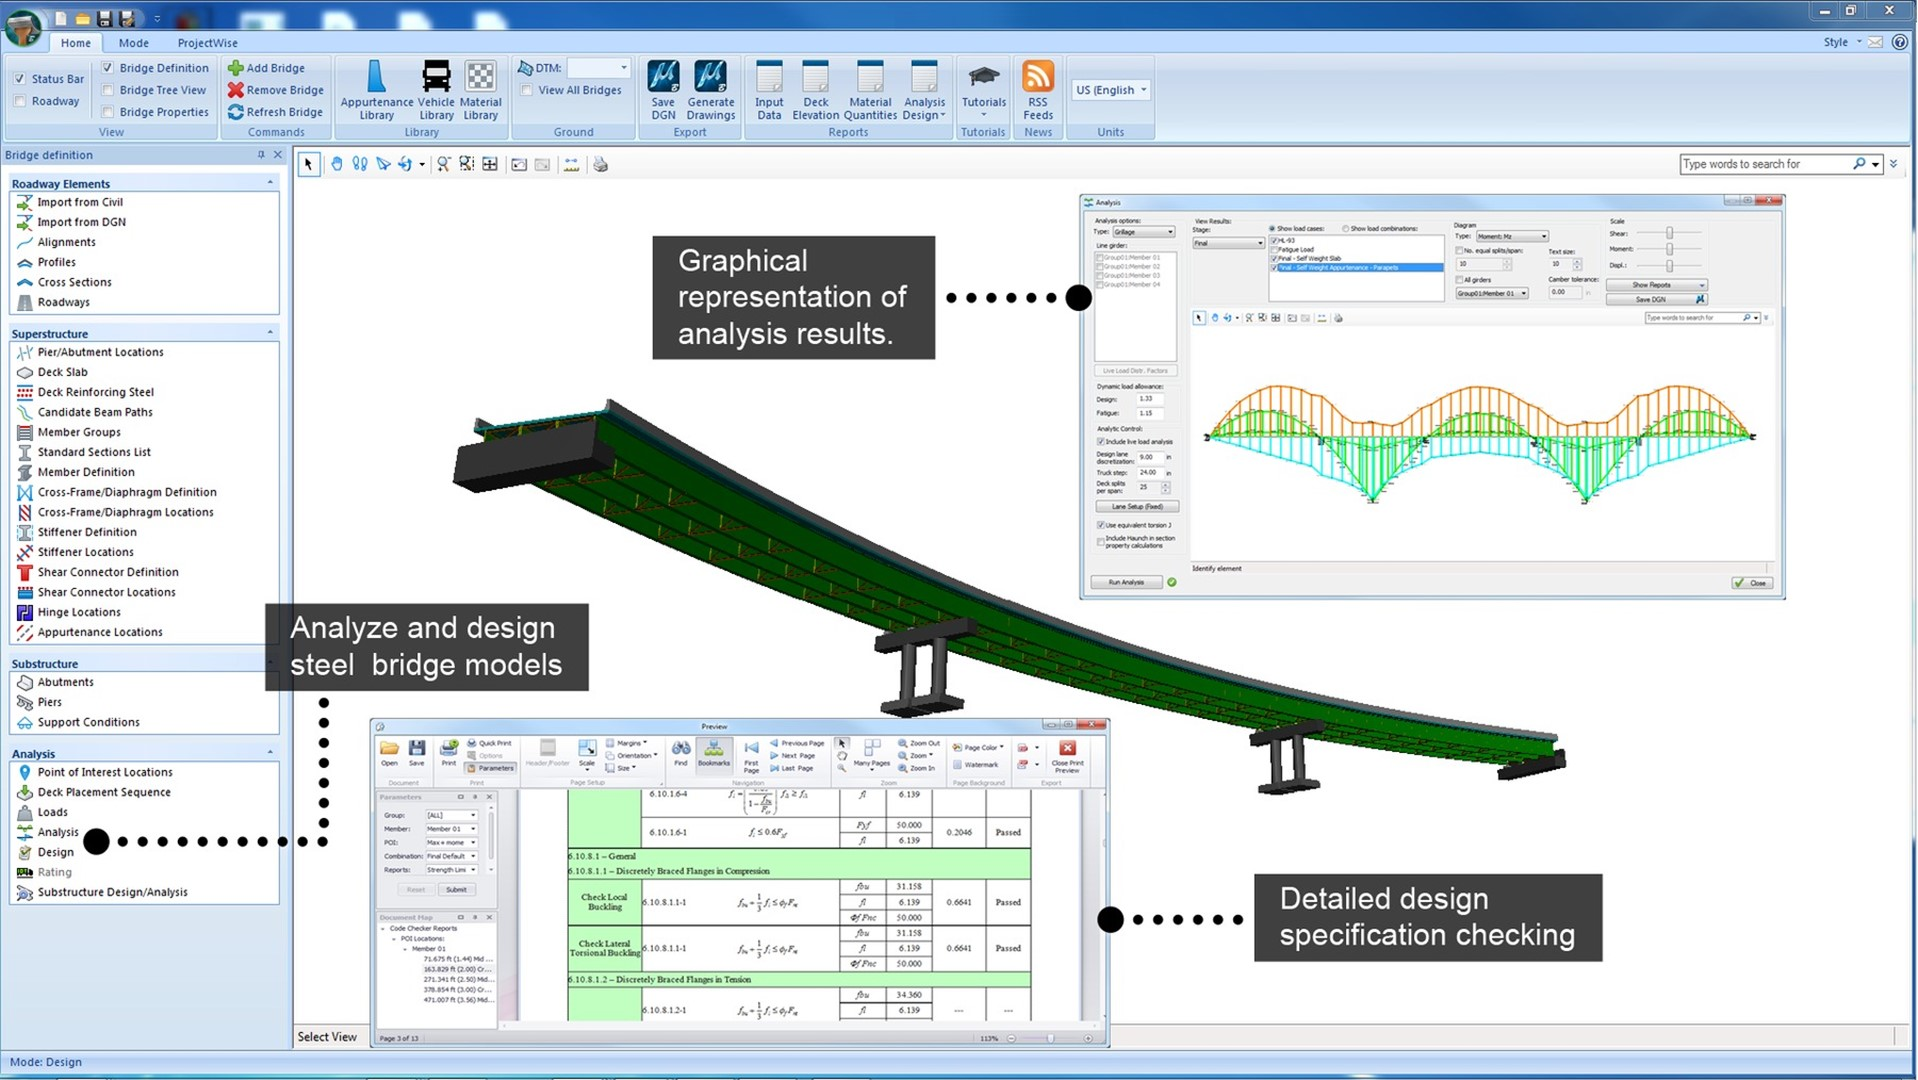 Design and analyze steel bridges_EDITED